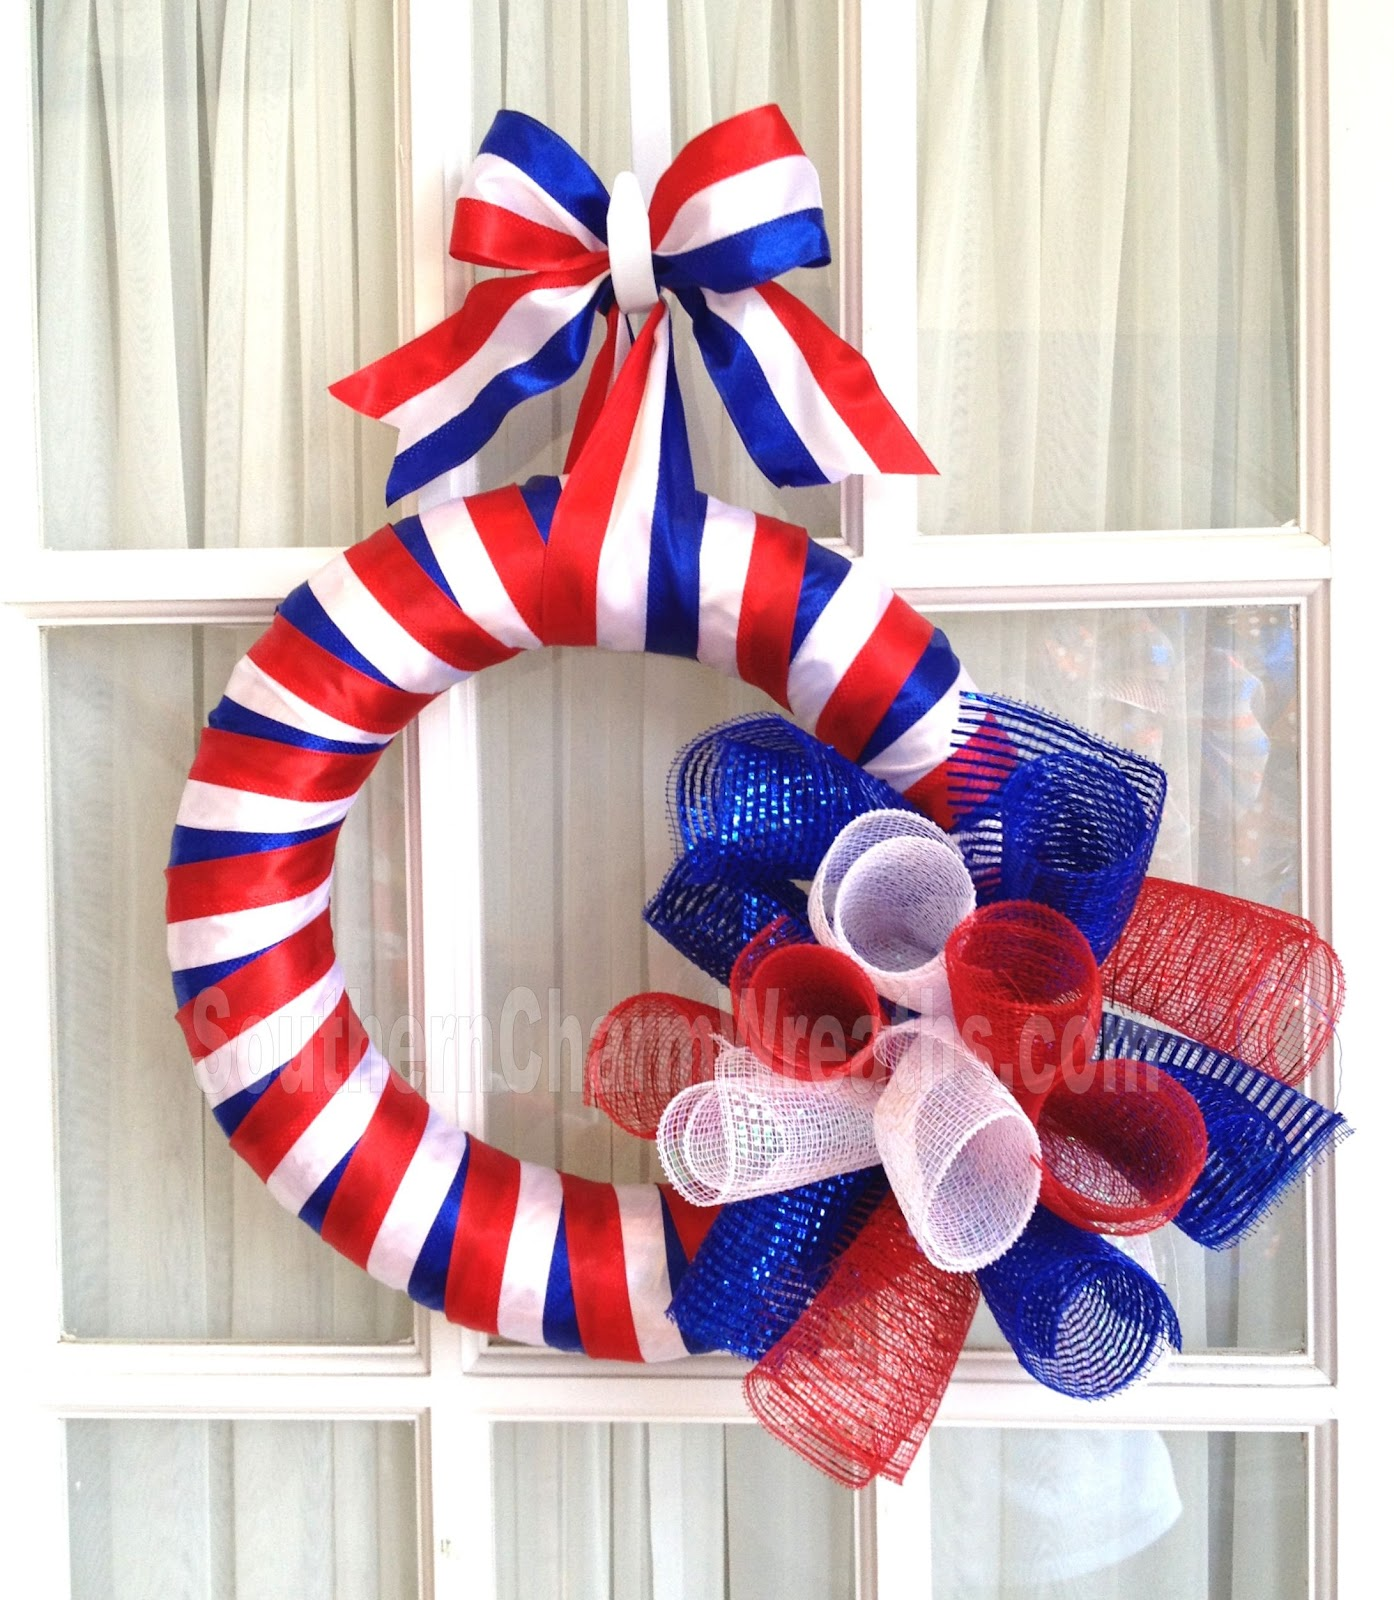 How to Make a Simple July 4th Door Wreath | Southern Charm Wreaths